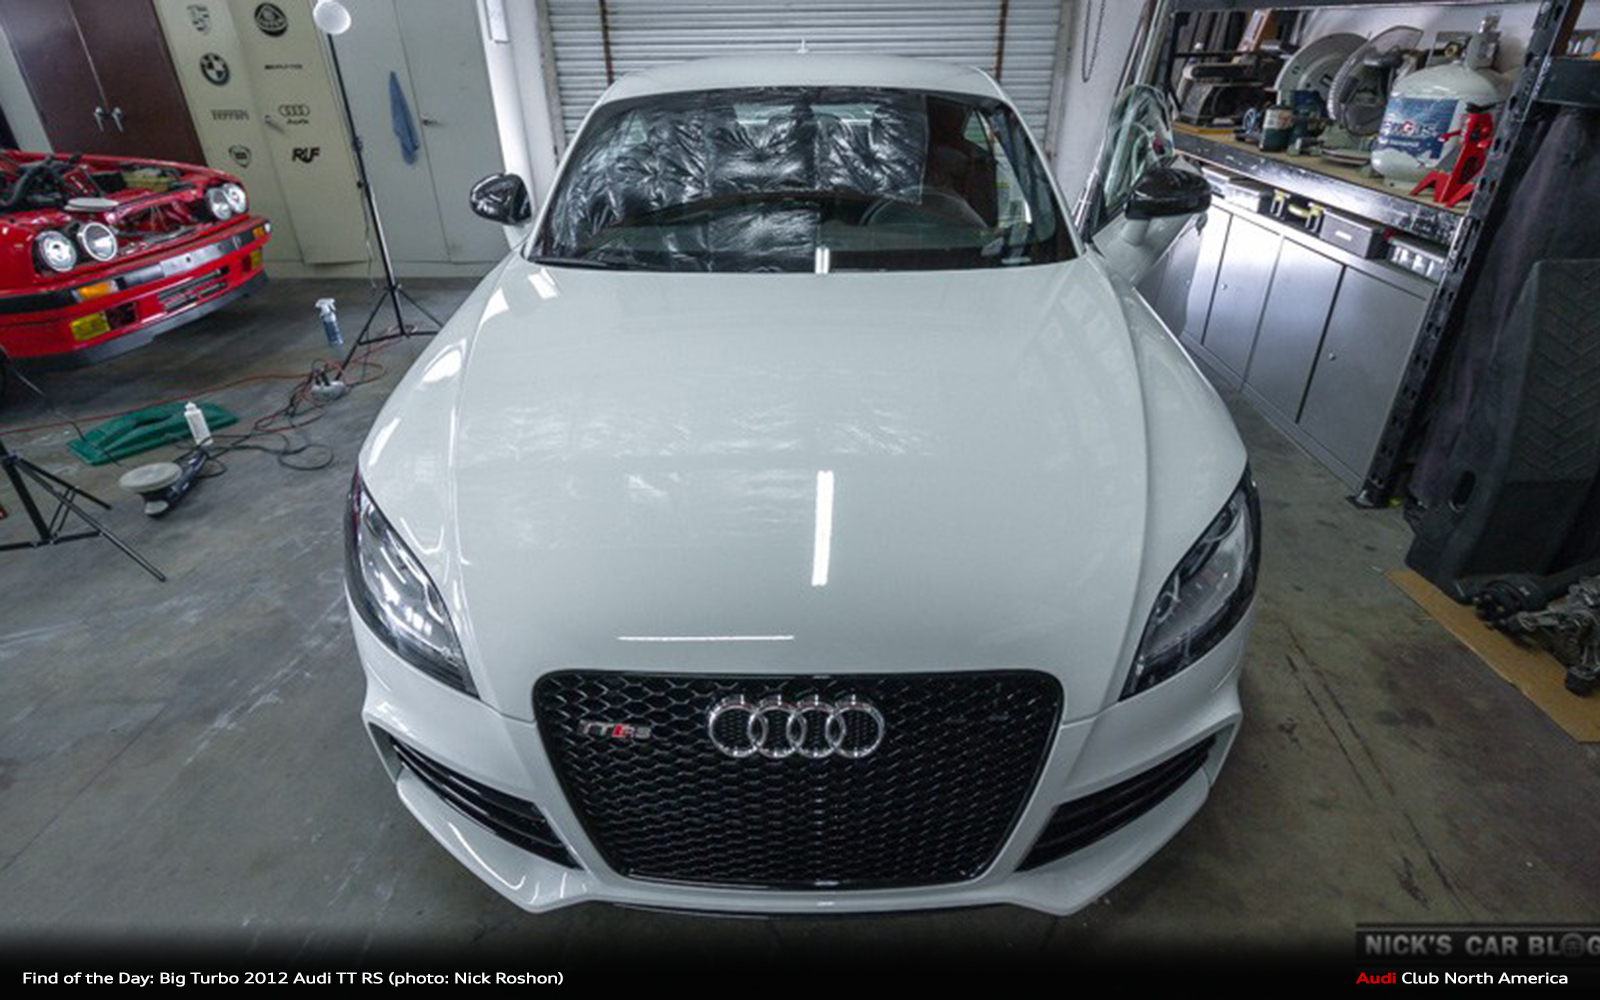 Find of the Day: 2012 Audi TT RS - A Shark in Wolf's Clothing